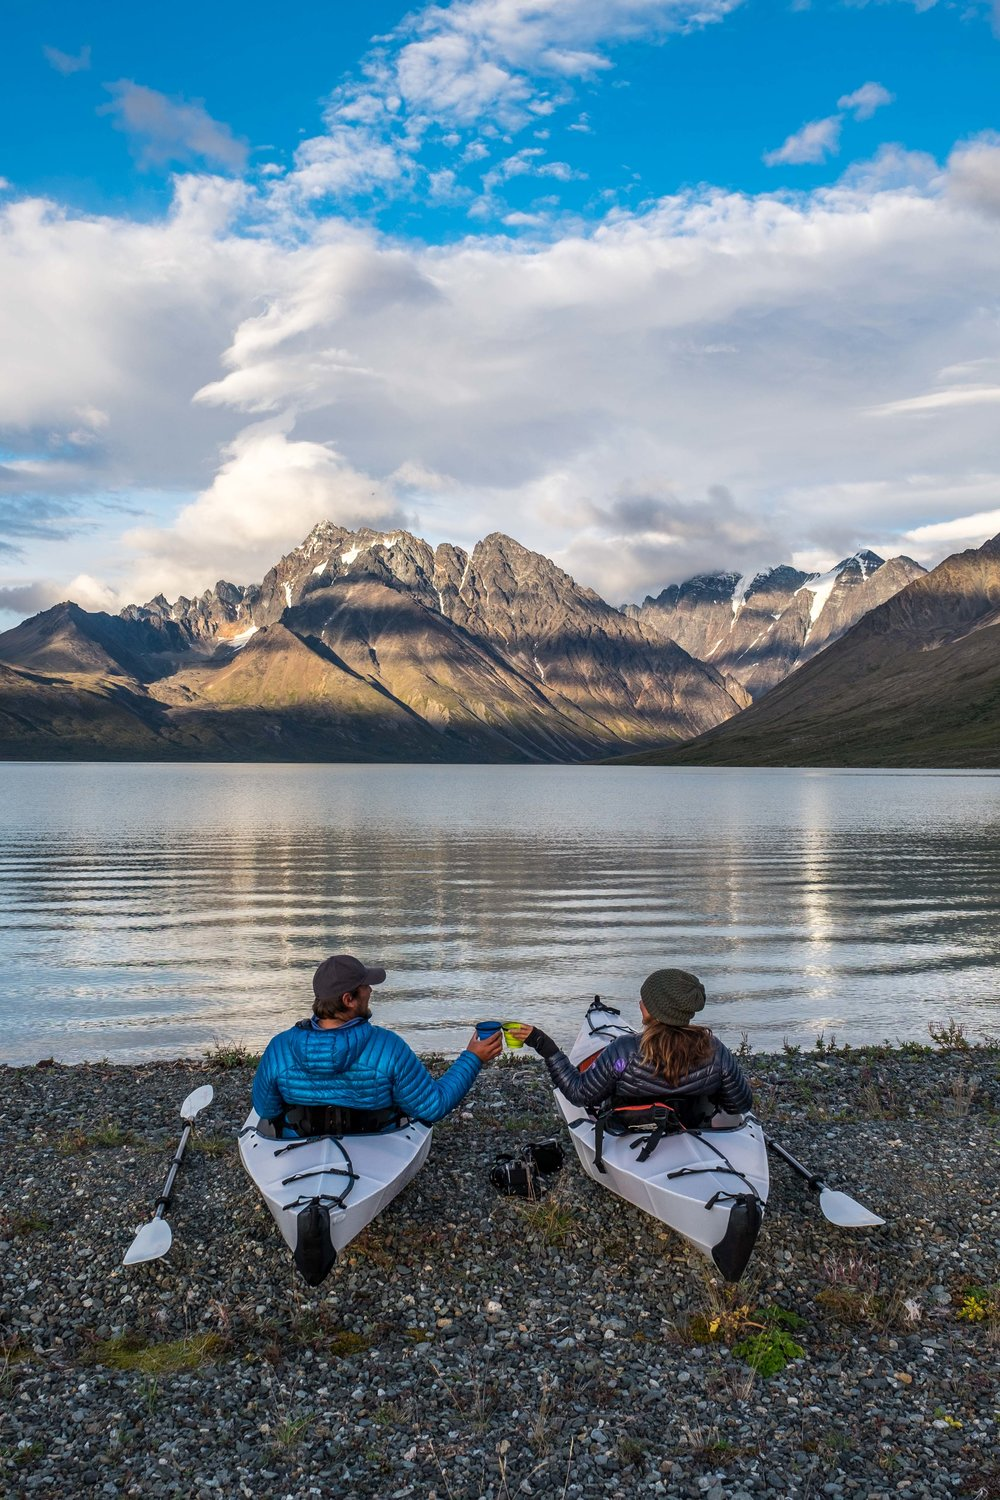 Kickin' it lakeside in our Oru Kayaks and sipping some wine in Lake Clark National Park in Alaska. Shot with FUJIFILM X-T1.